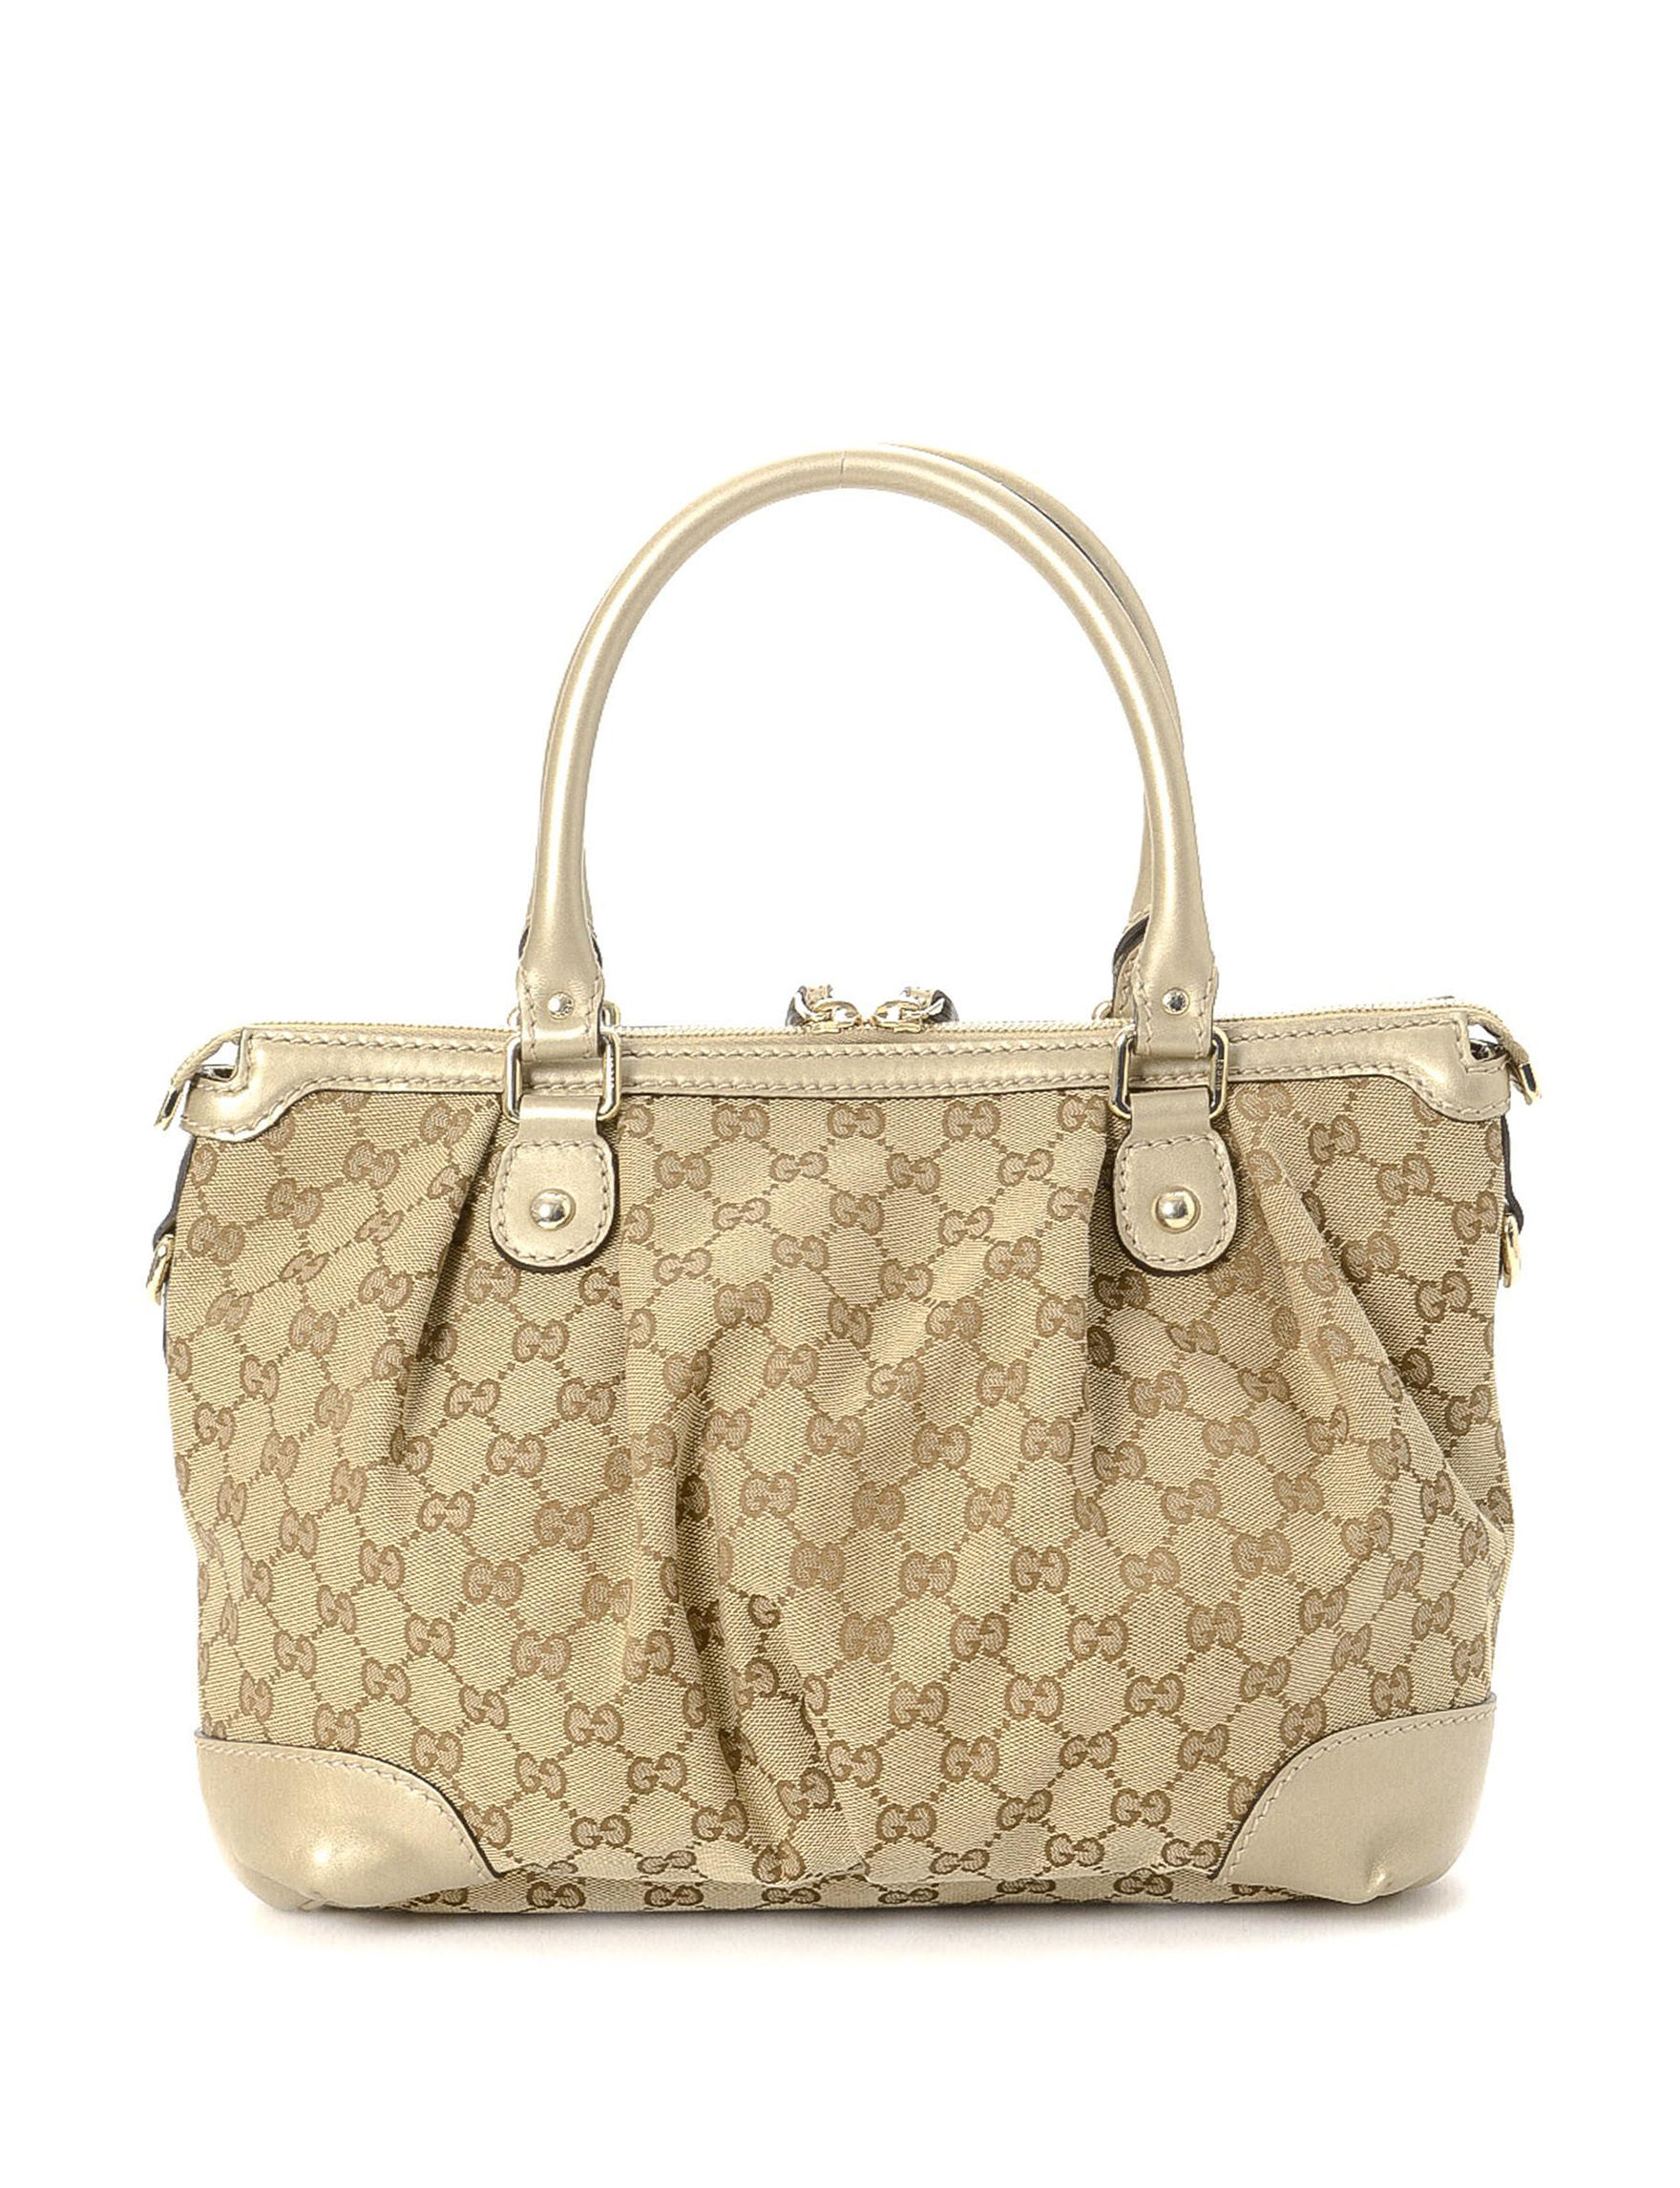 4fcc7a9e4b77 Luxury Pre-Owned Gucci GG Canvas Sukey Two Way Handbag - FINAL SALE | Stage  Stores